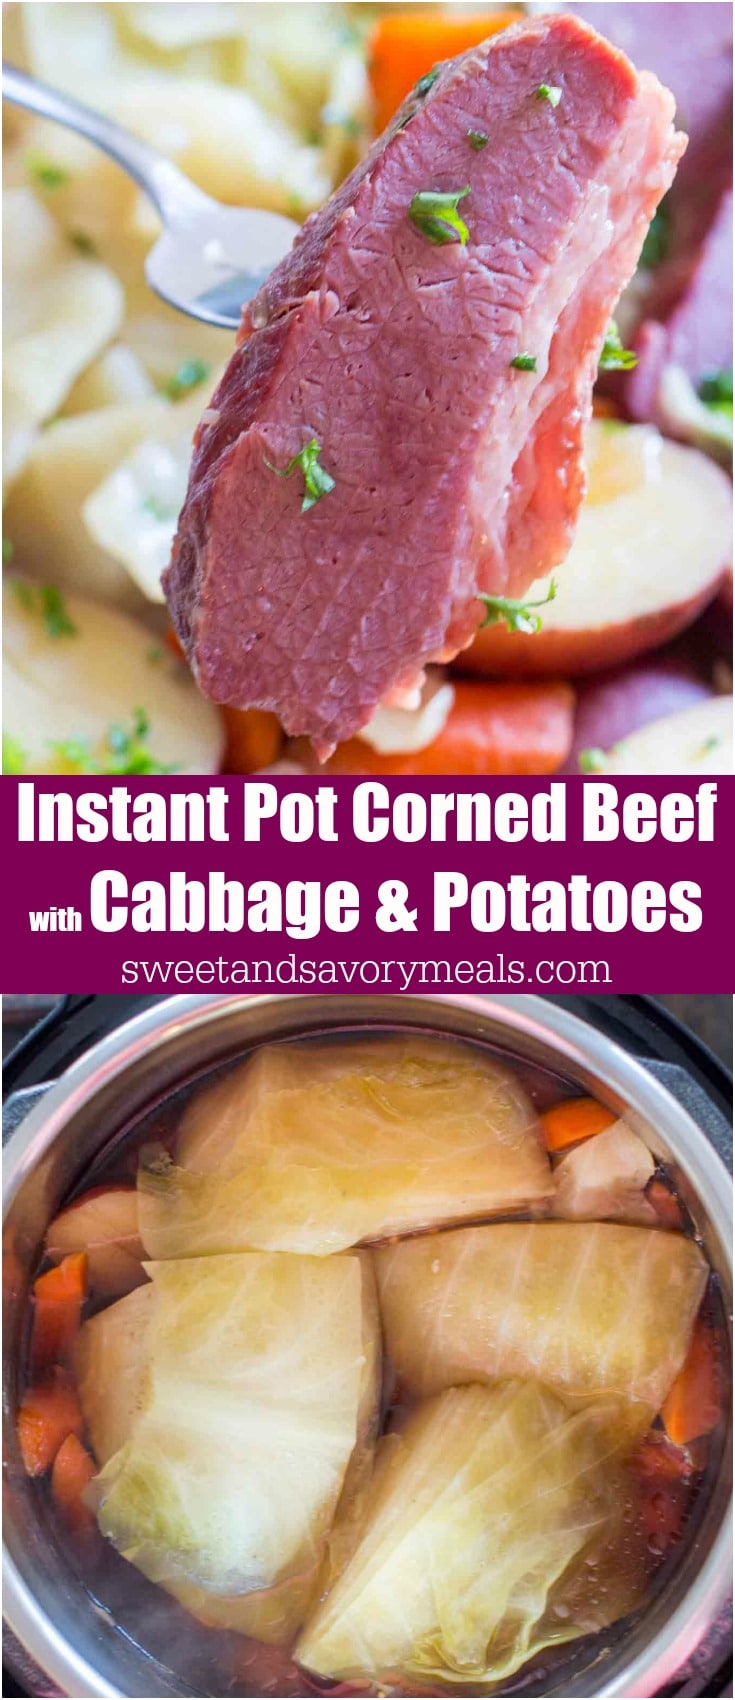 Instant pot corned beef with cabbage and potatoes photo.